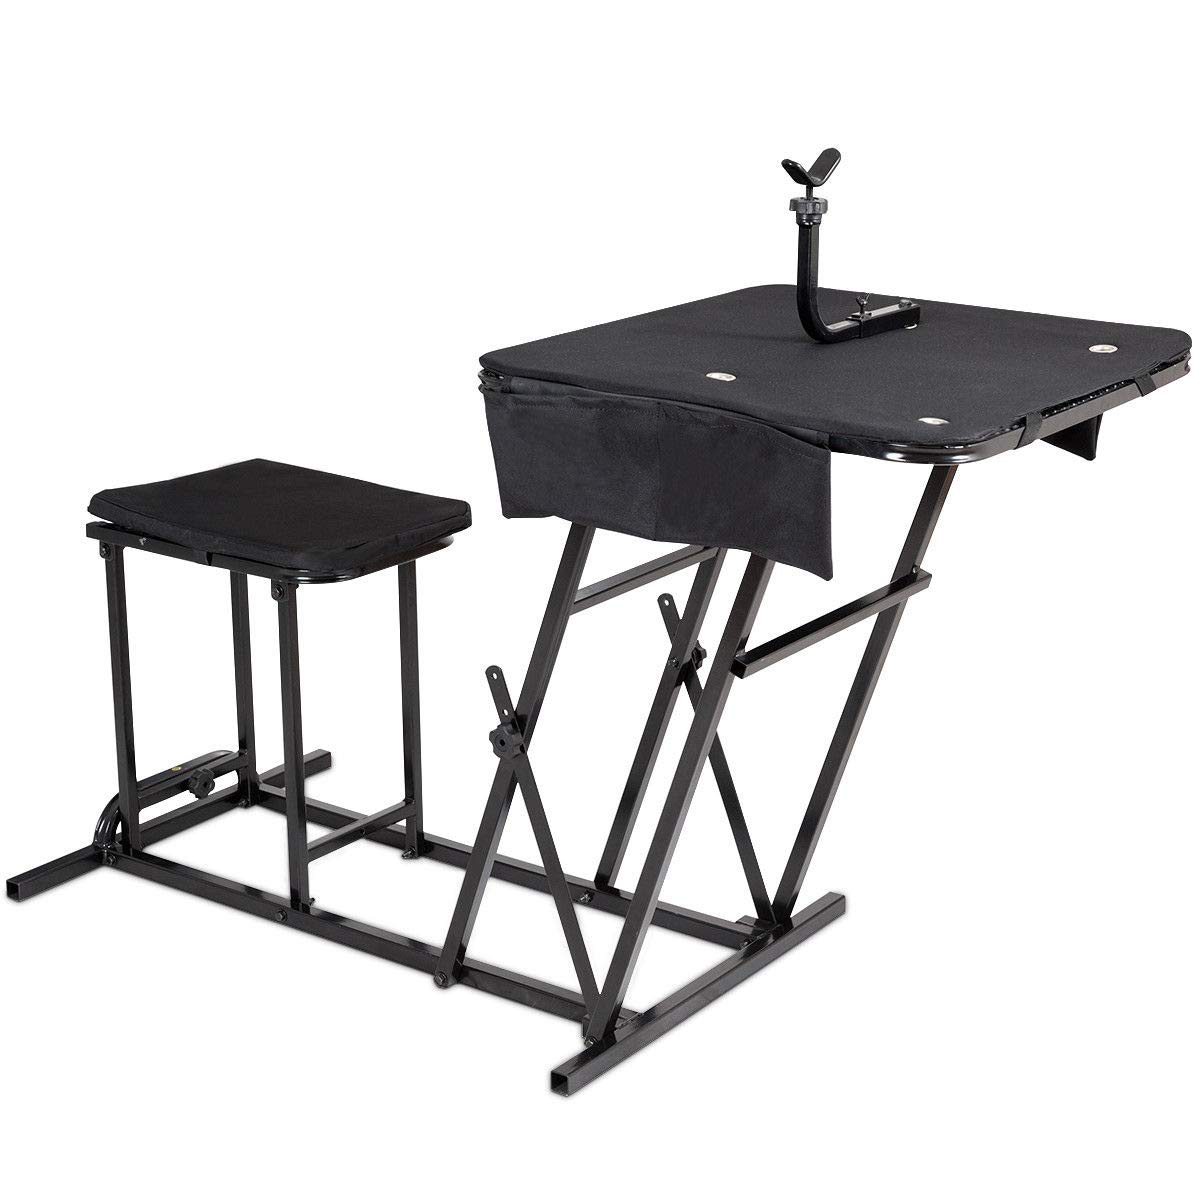 GOPLUS Portable Shooting Table Bench Seat with Adjustable Gun Rest and Ammo Pockets